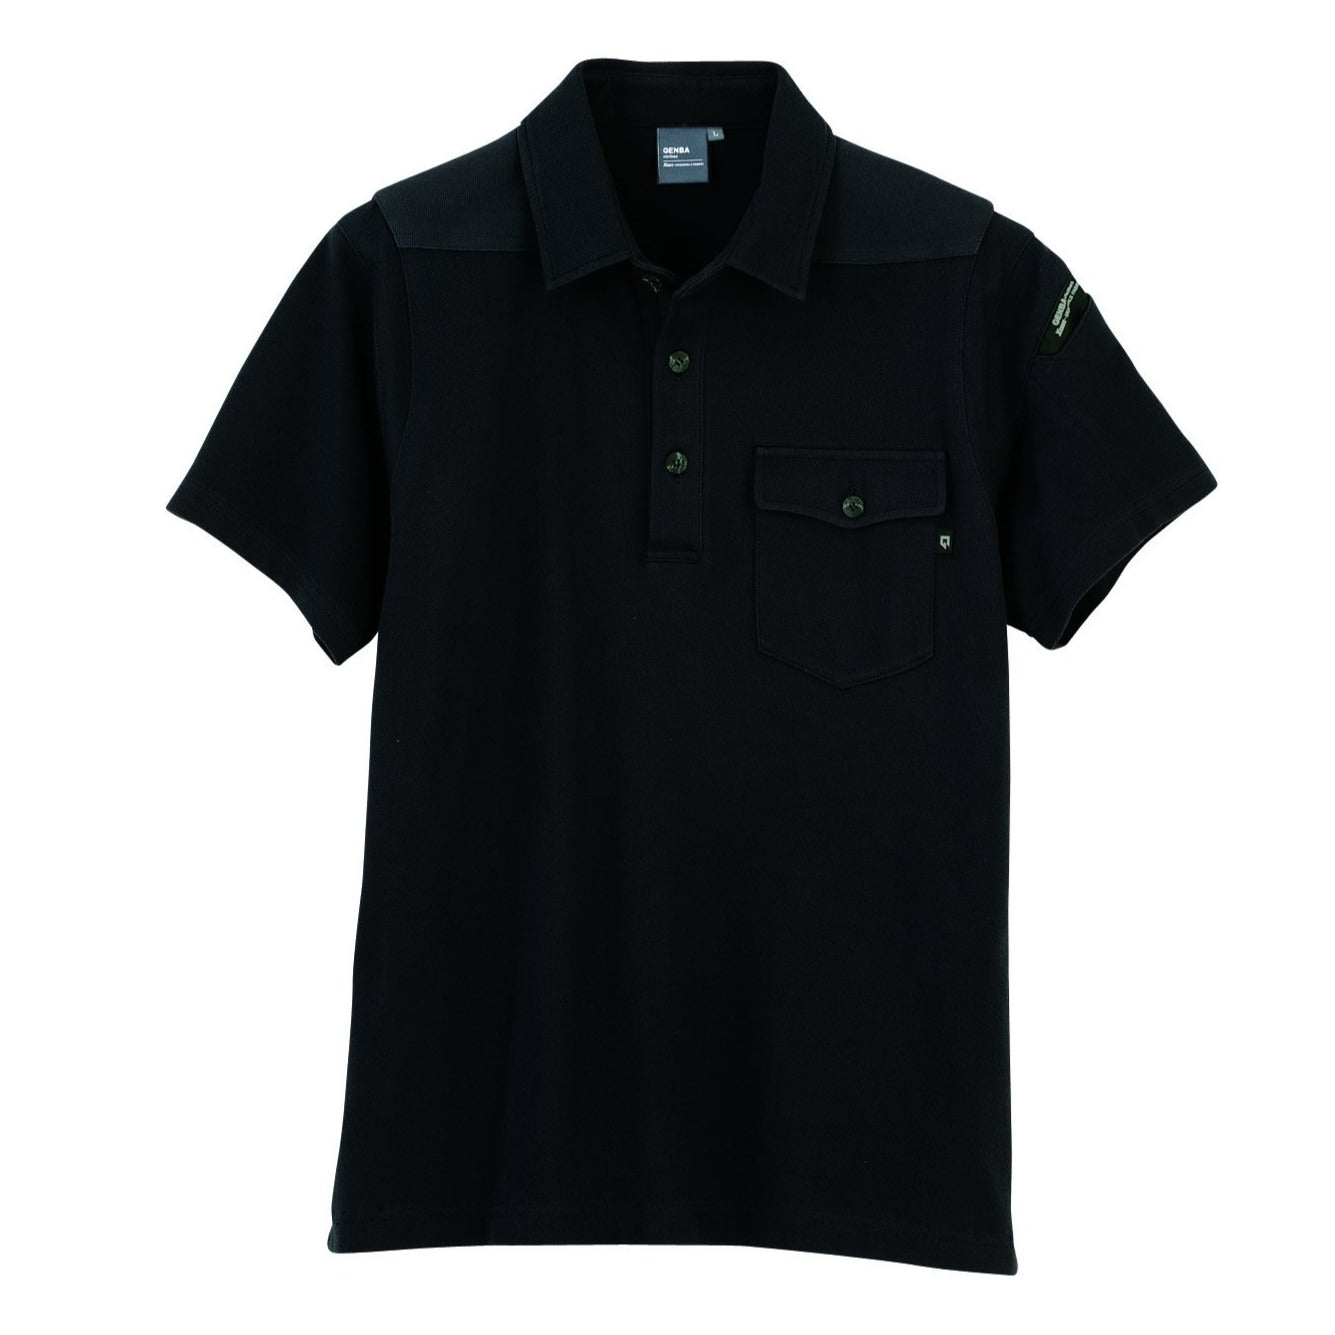 XEBEC 6050 Short sleeve polo shirt